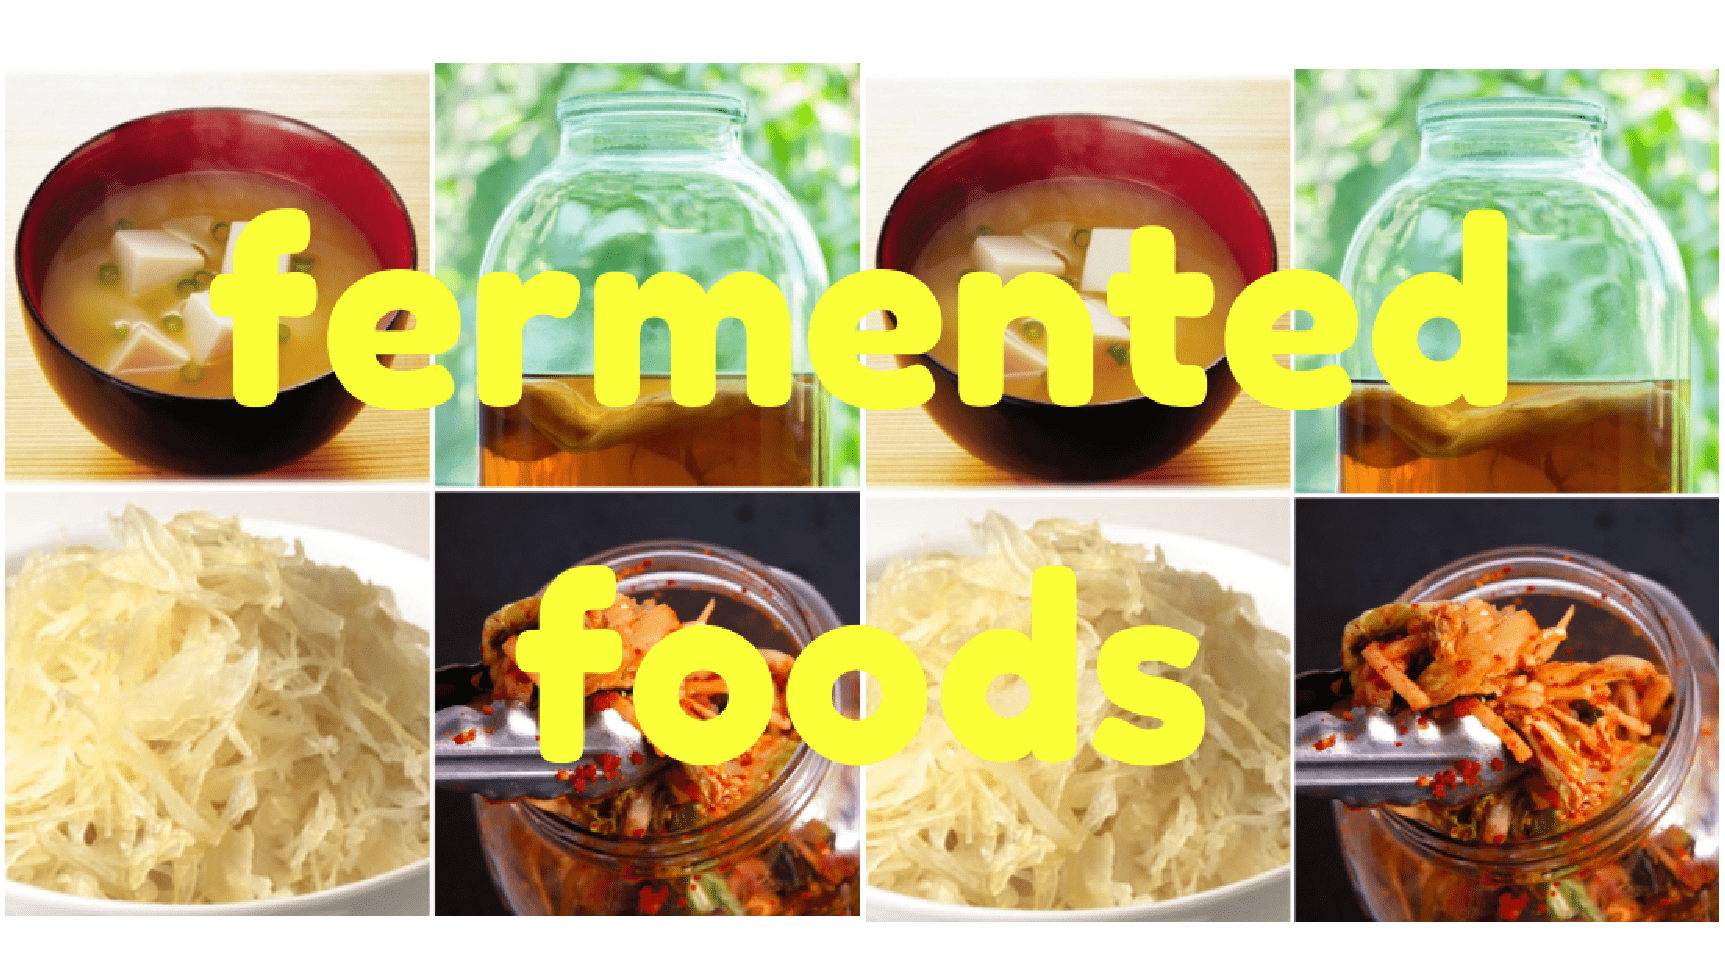 the making of fermented beverages Making fermented beverages at home there are several attractive reasons for making your own ferments it's less expensive, the resulting ferment is richer in probiotics, you control the ferment (resulting taste and texture), and it's fun.